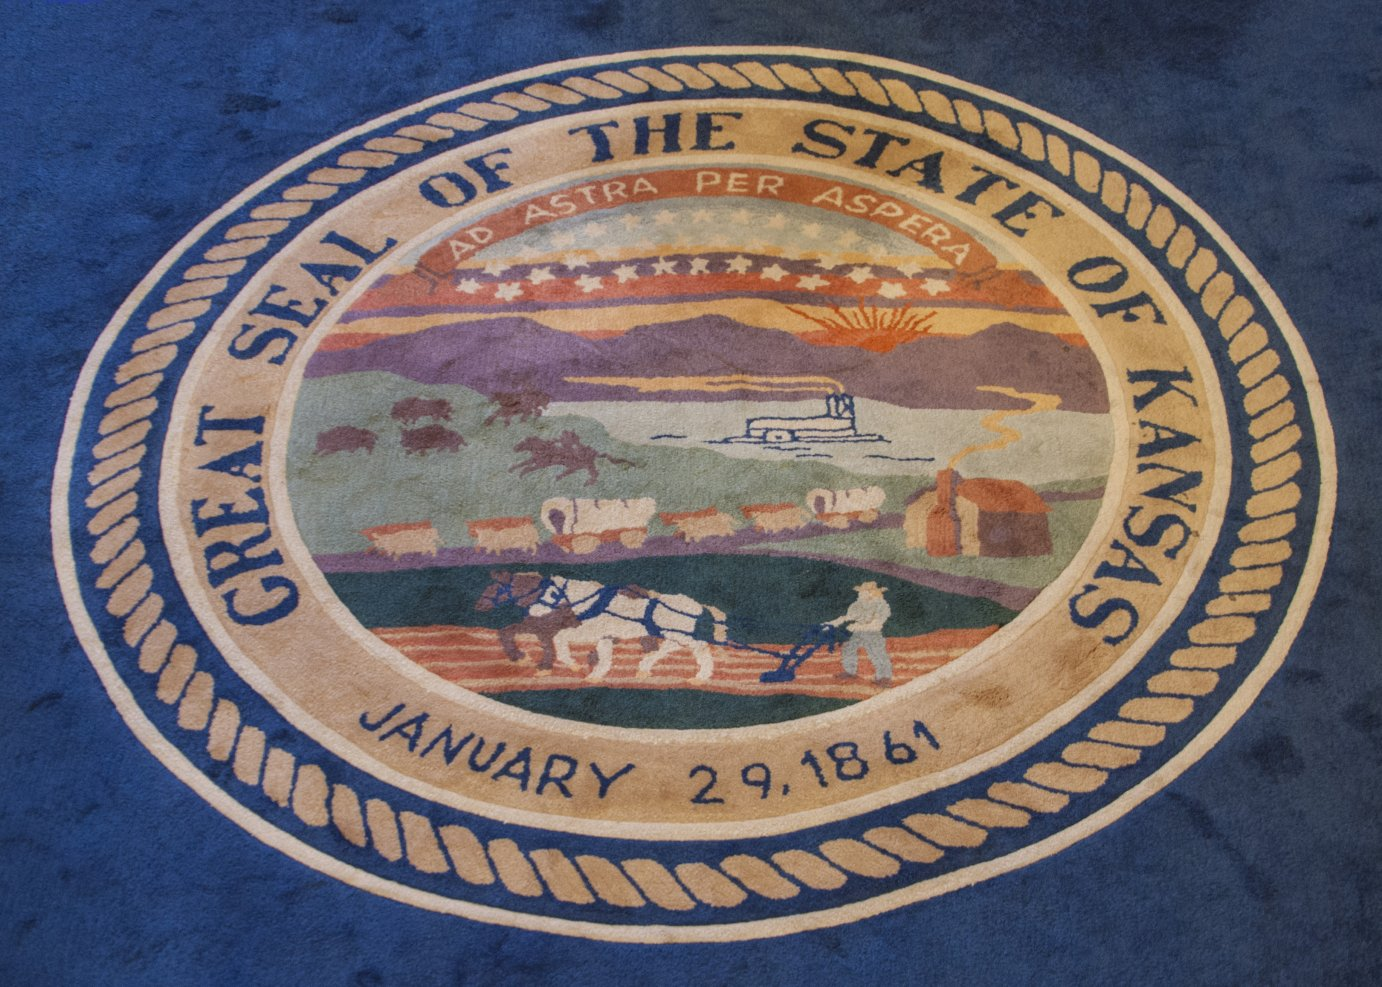 This seal of the great State of Kansas is part of the carpet inside the governor's ceremonial office at the Kansas Statehouse.  (Photo by Dan Skinner)